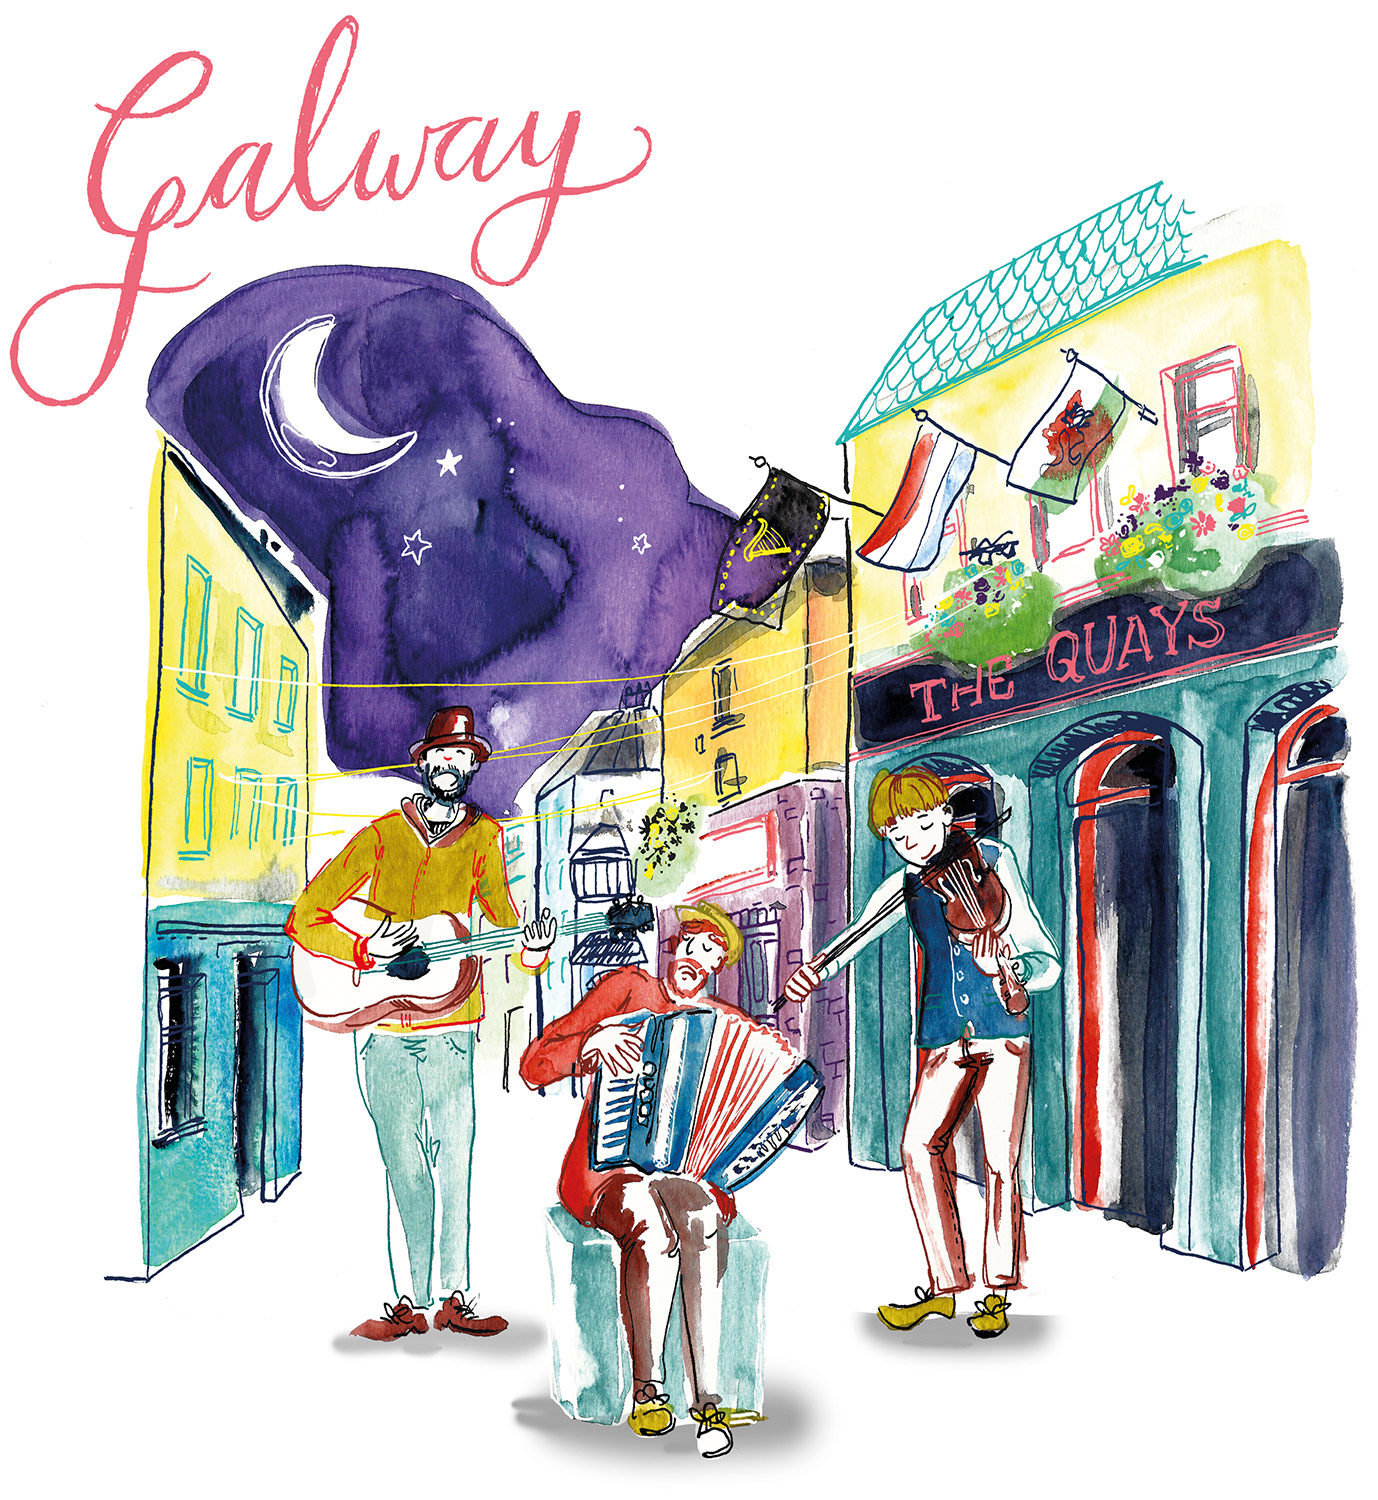 illustrierte Landkarte, Illustrated Map, sightseeing Irland, Galway in Aquarell